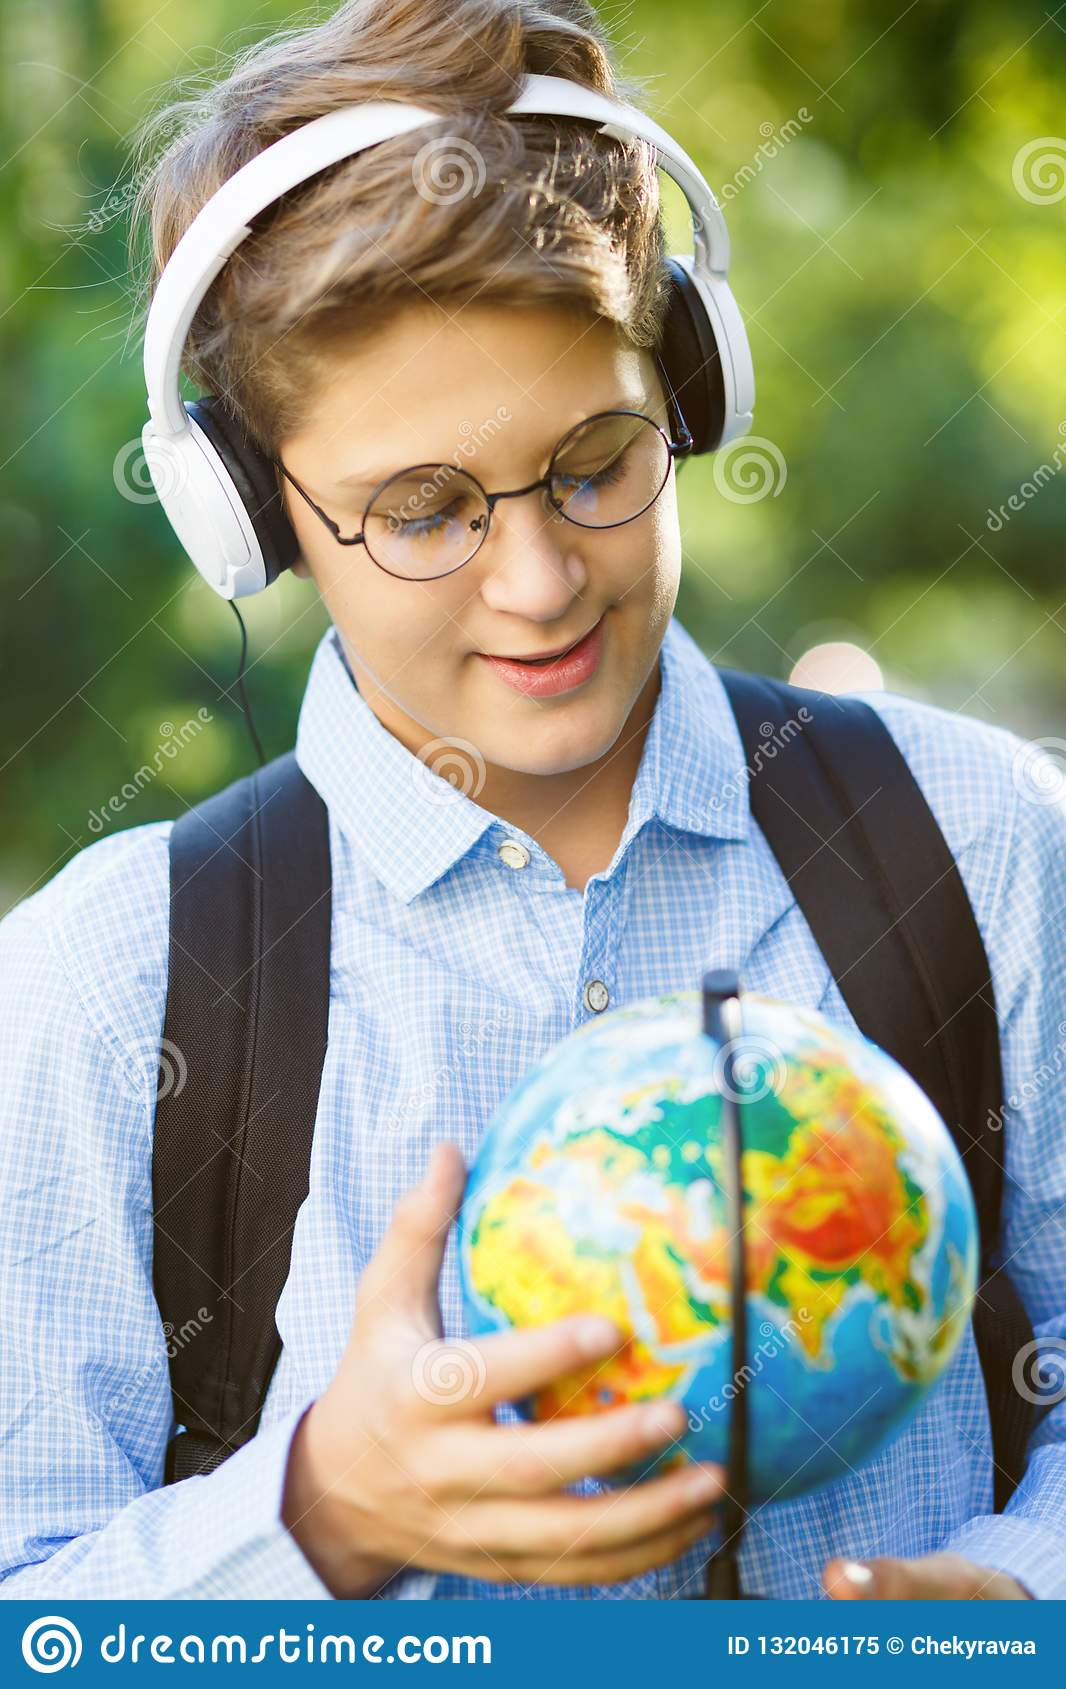 8768d2767e Cute young boy in round glasses and blue shirt stands on the grass and  holds a